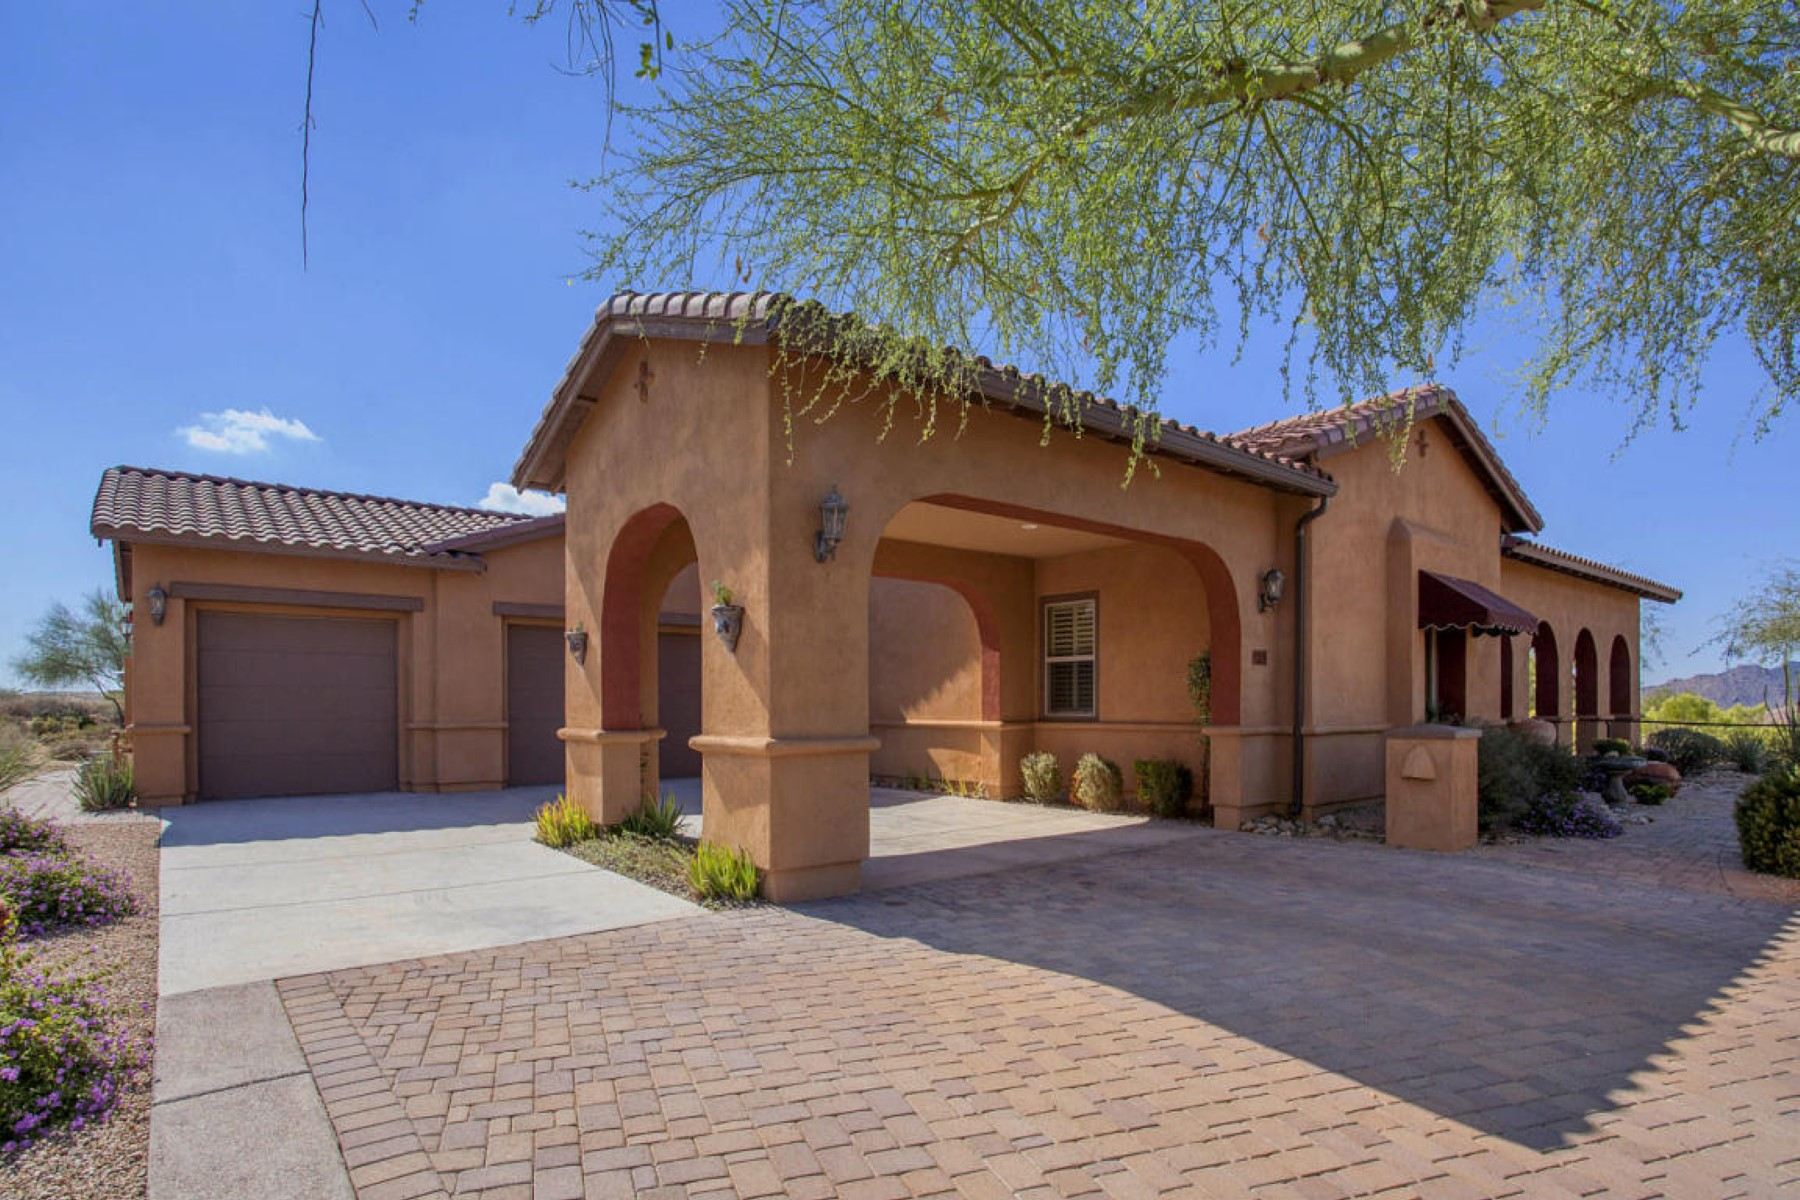 Single Family Home for Sale at Immaculate and impeccably maintained Scottsdale home 9715 E Allison Way Scottsdale, Arizona, 85262 United States